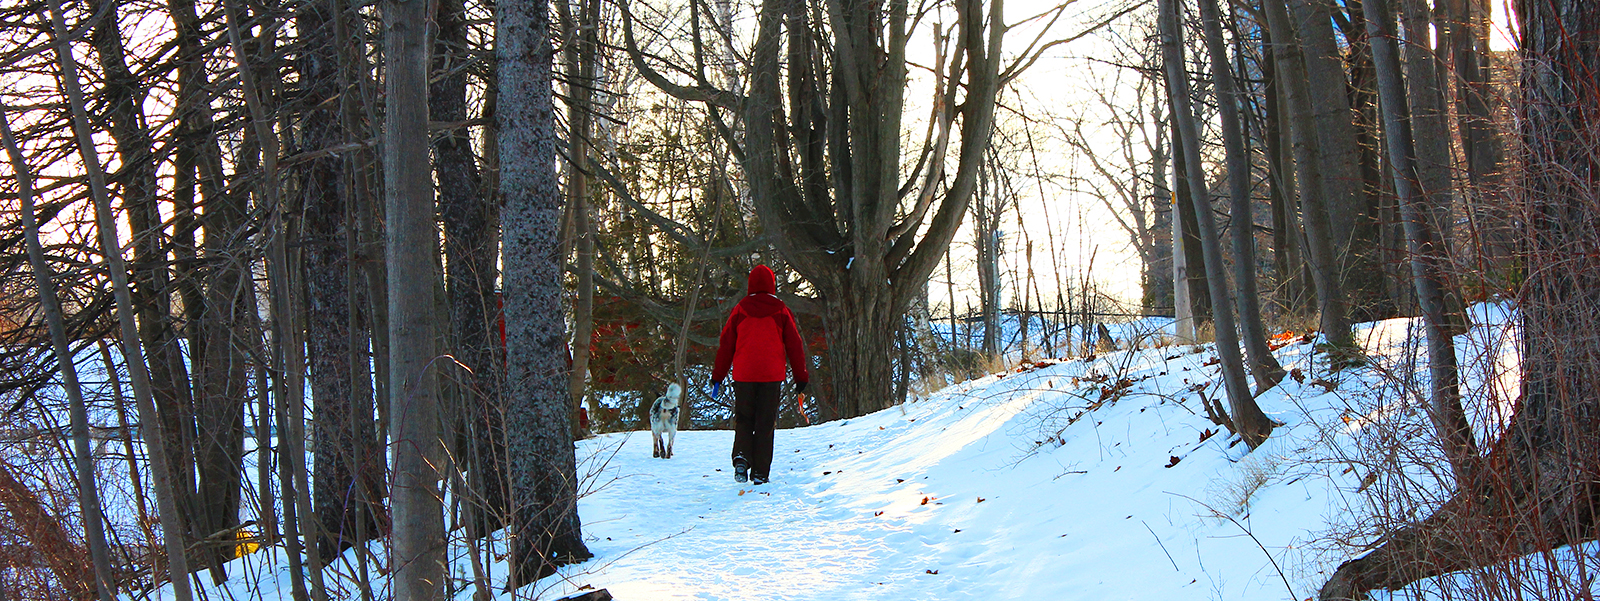 Person walking dog on snowy path